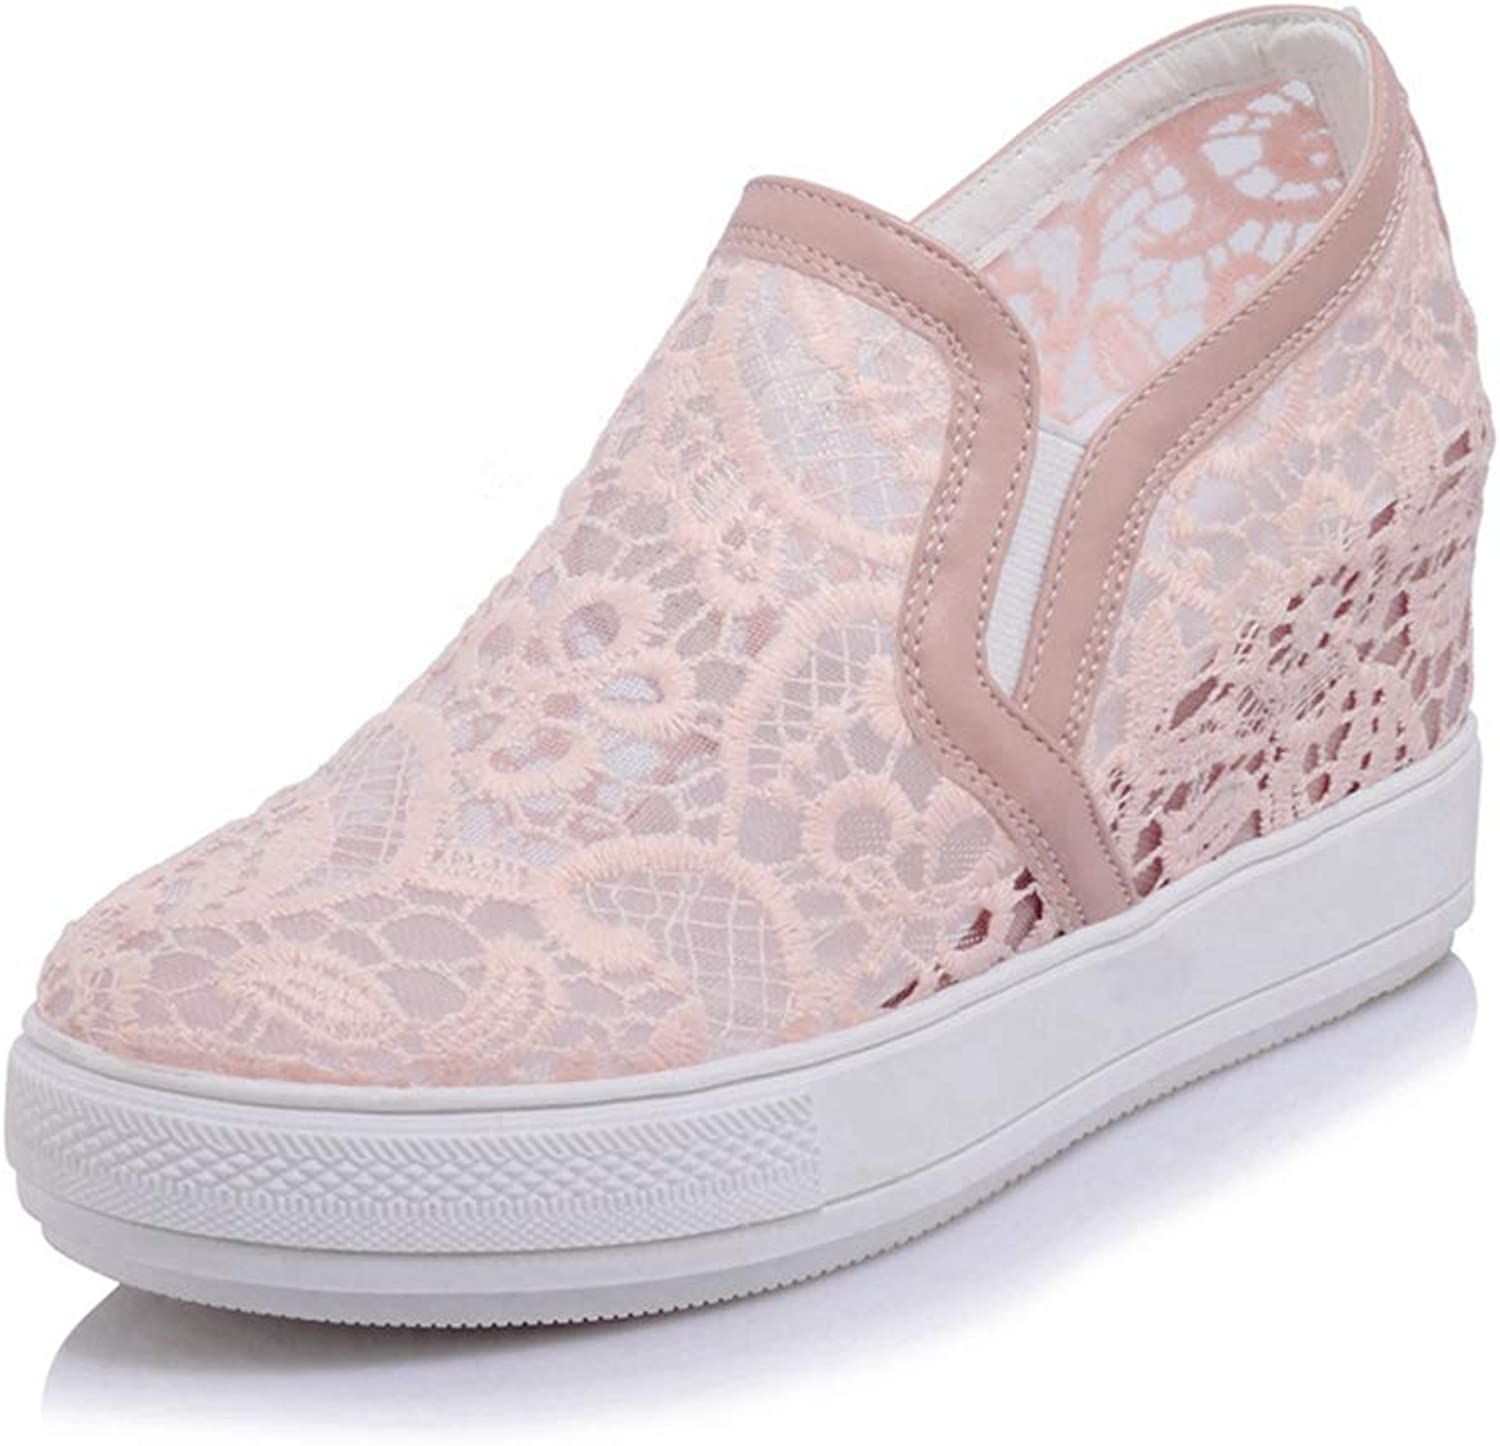 CYBLING Women's Hidden Heel Wedges shoes Low Top Platform Casual Lace Pull On Fashion Sneakers